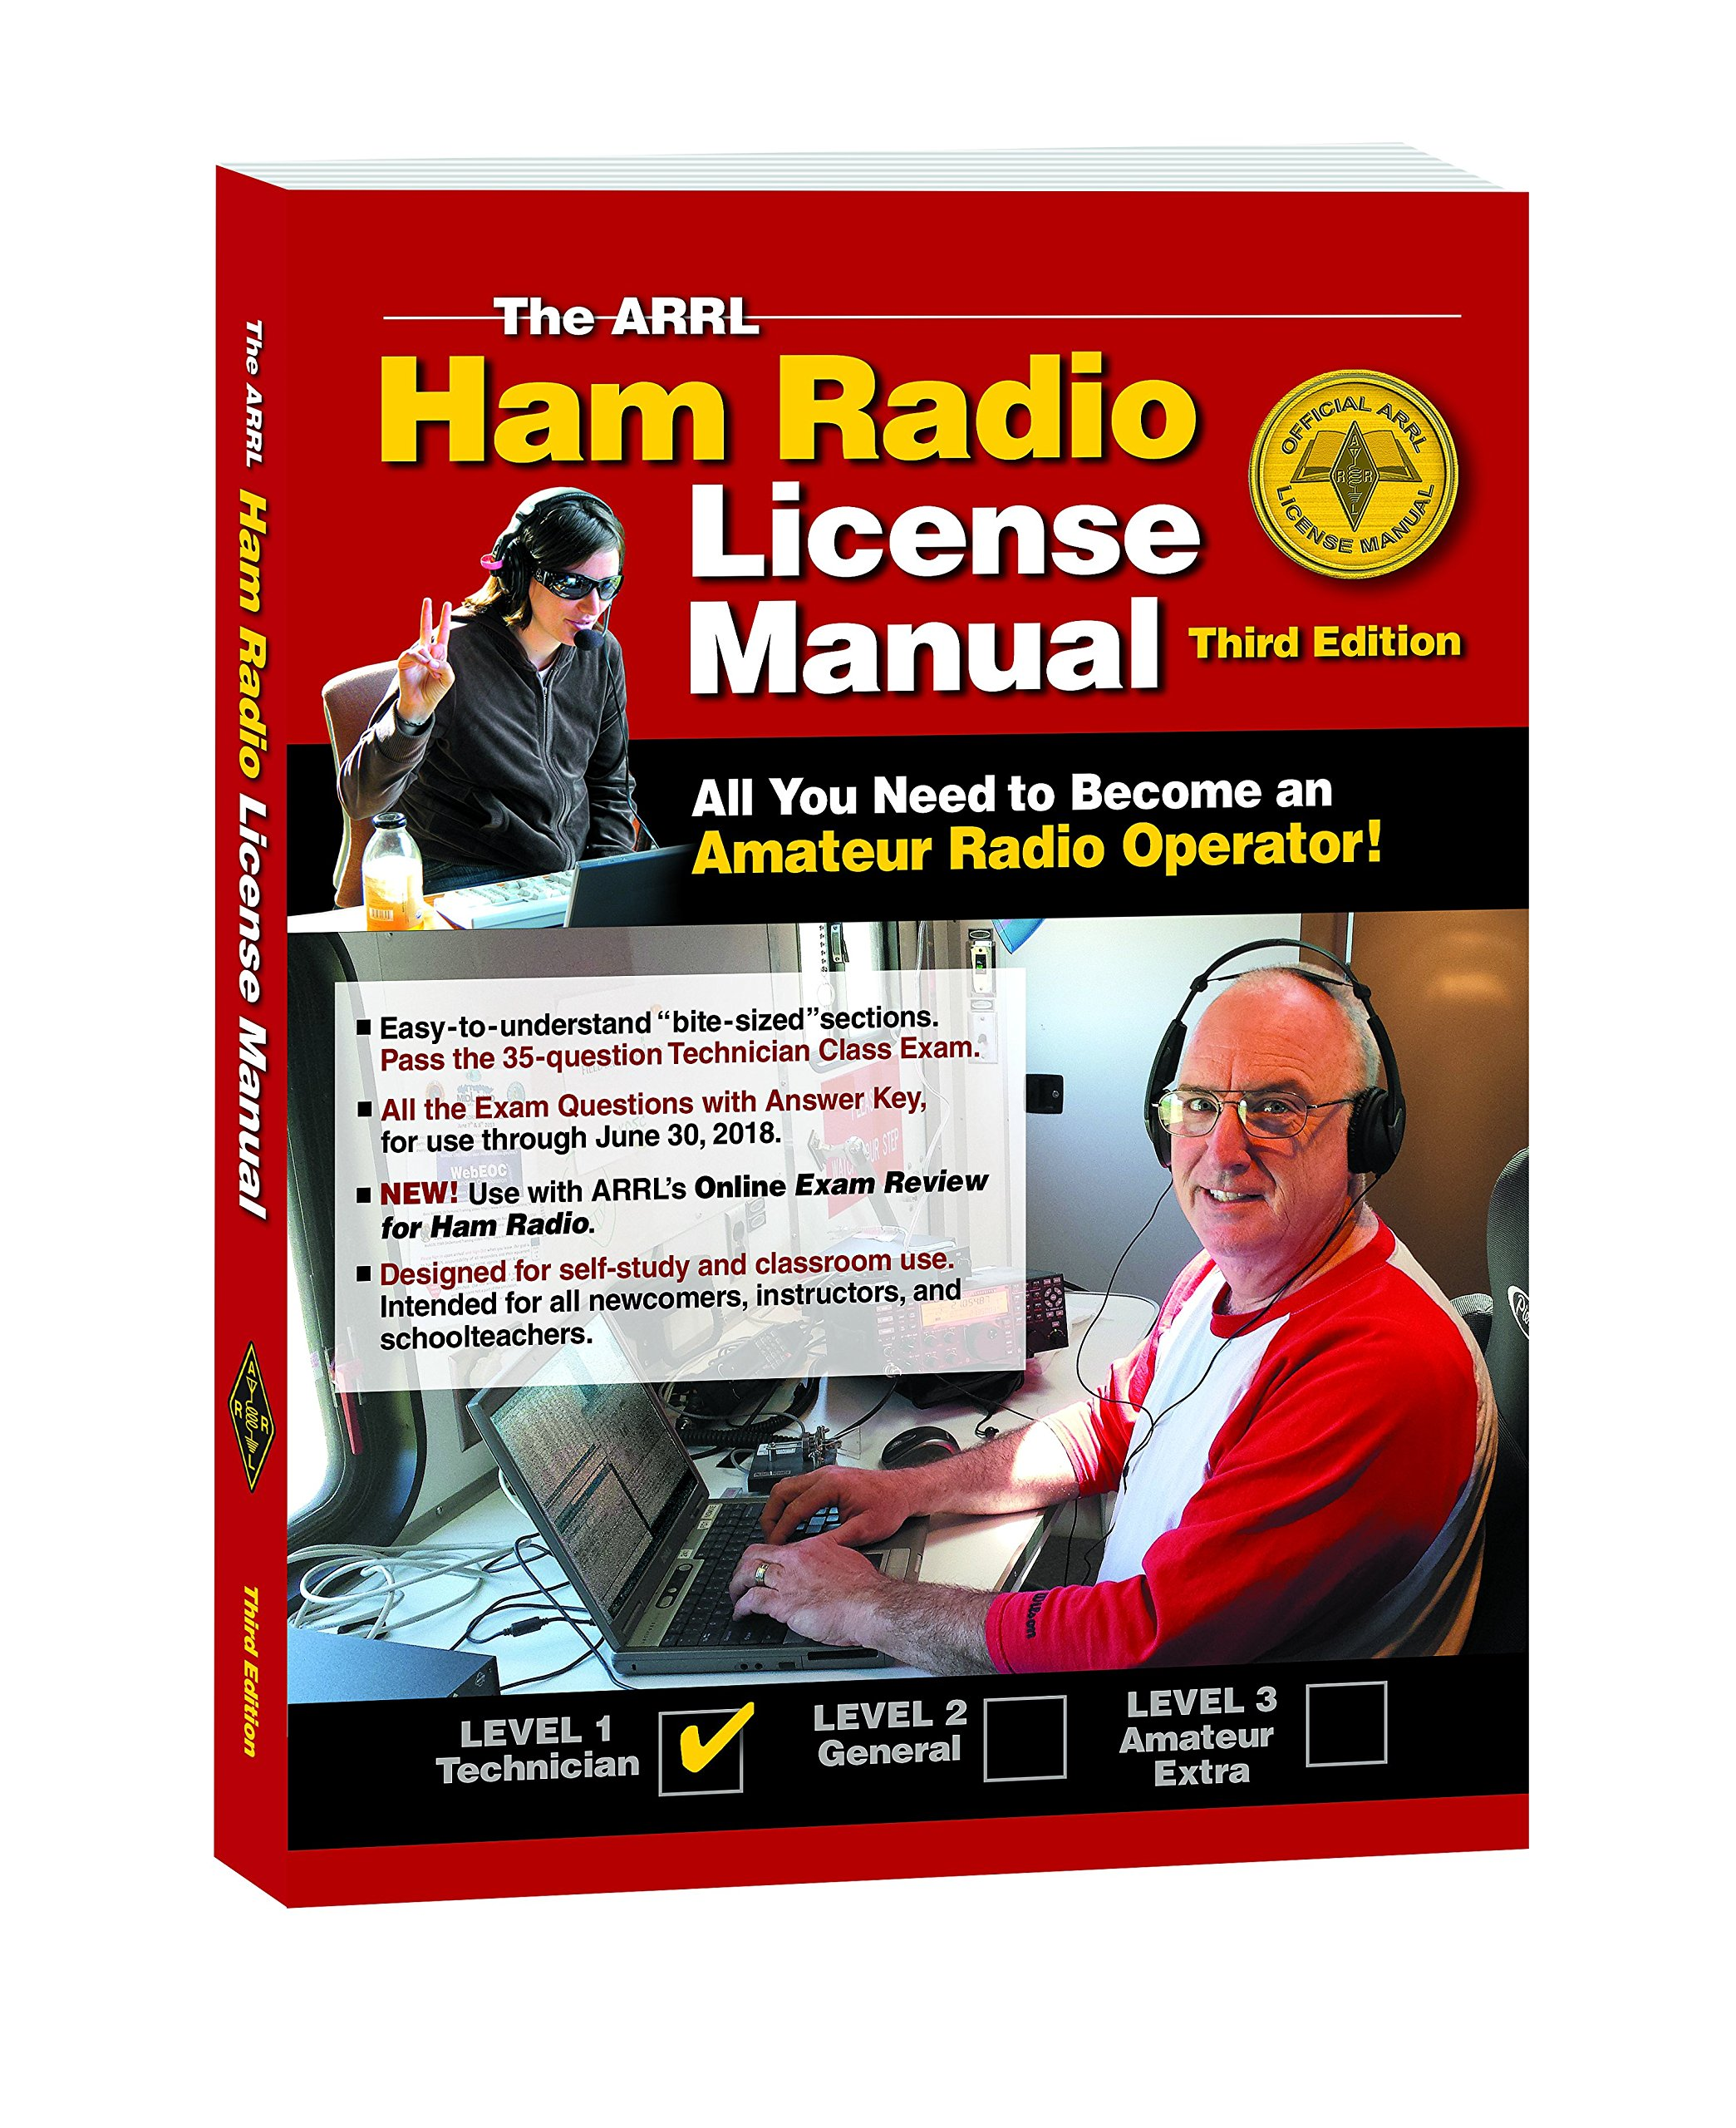 The arrl ham radio license manual ward silver mark wilson the arrl ham radio license manual ward silver mark wilson 9781625950130 performing arts amazon canada xflitez Image collections